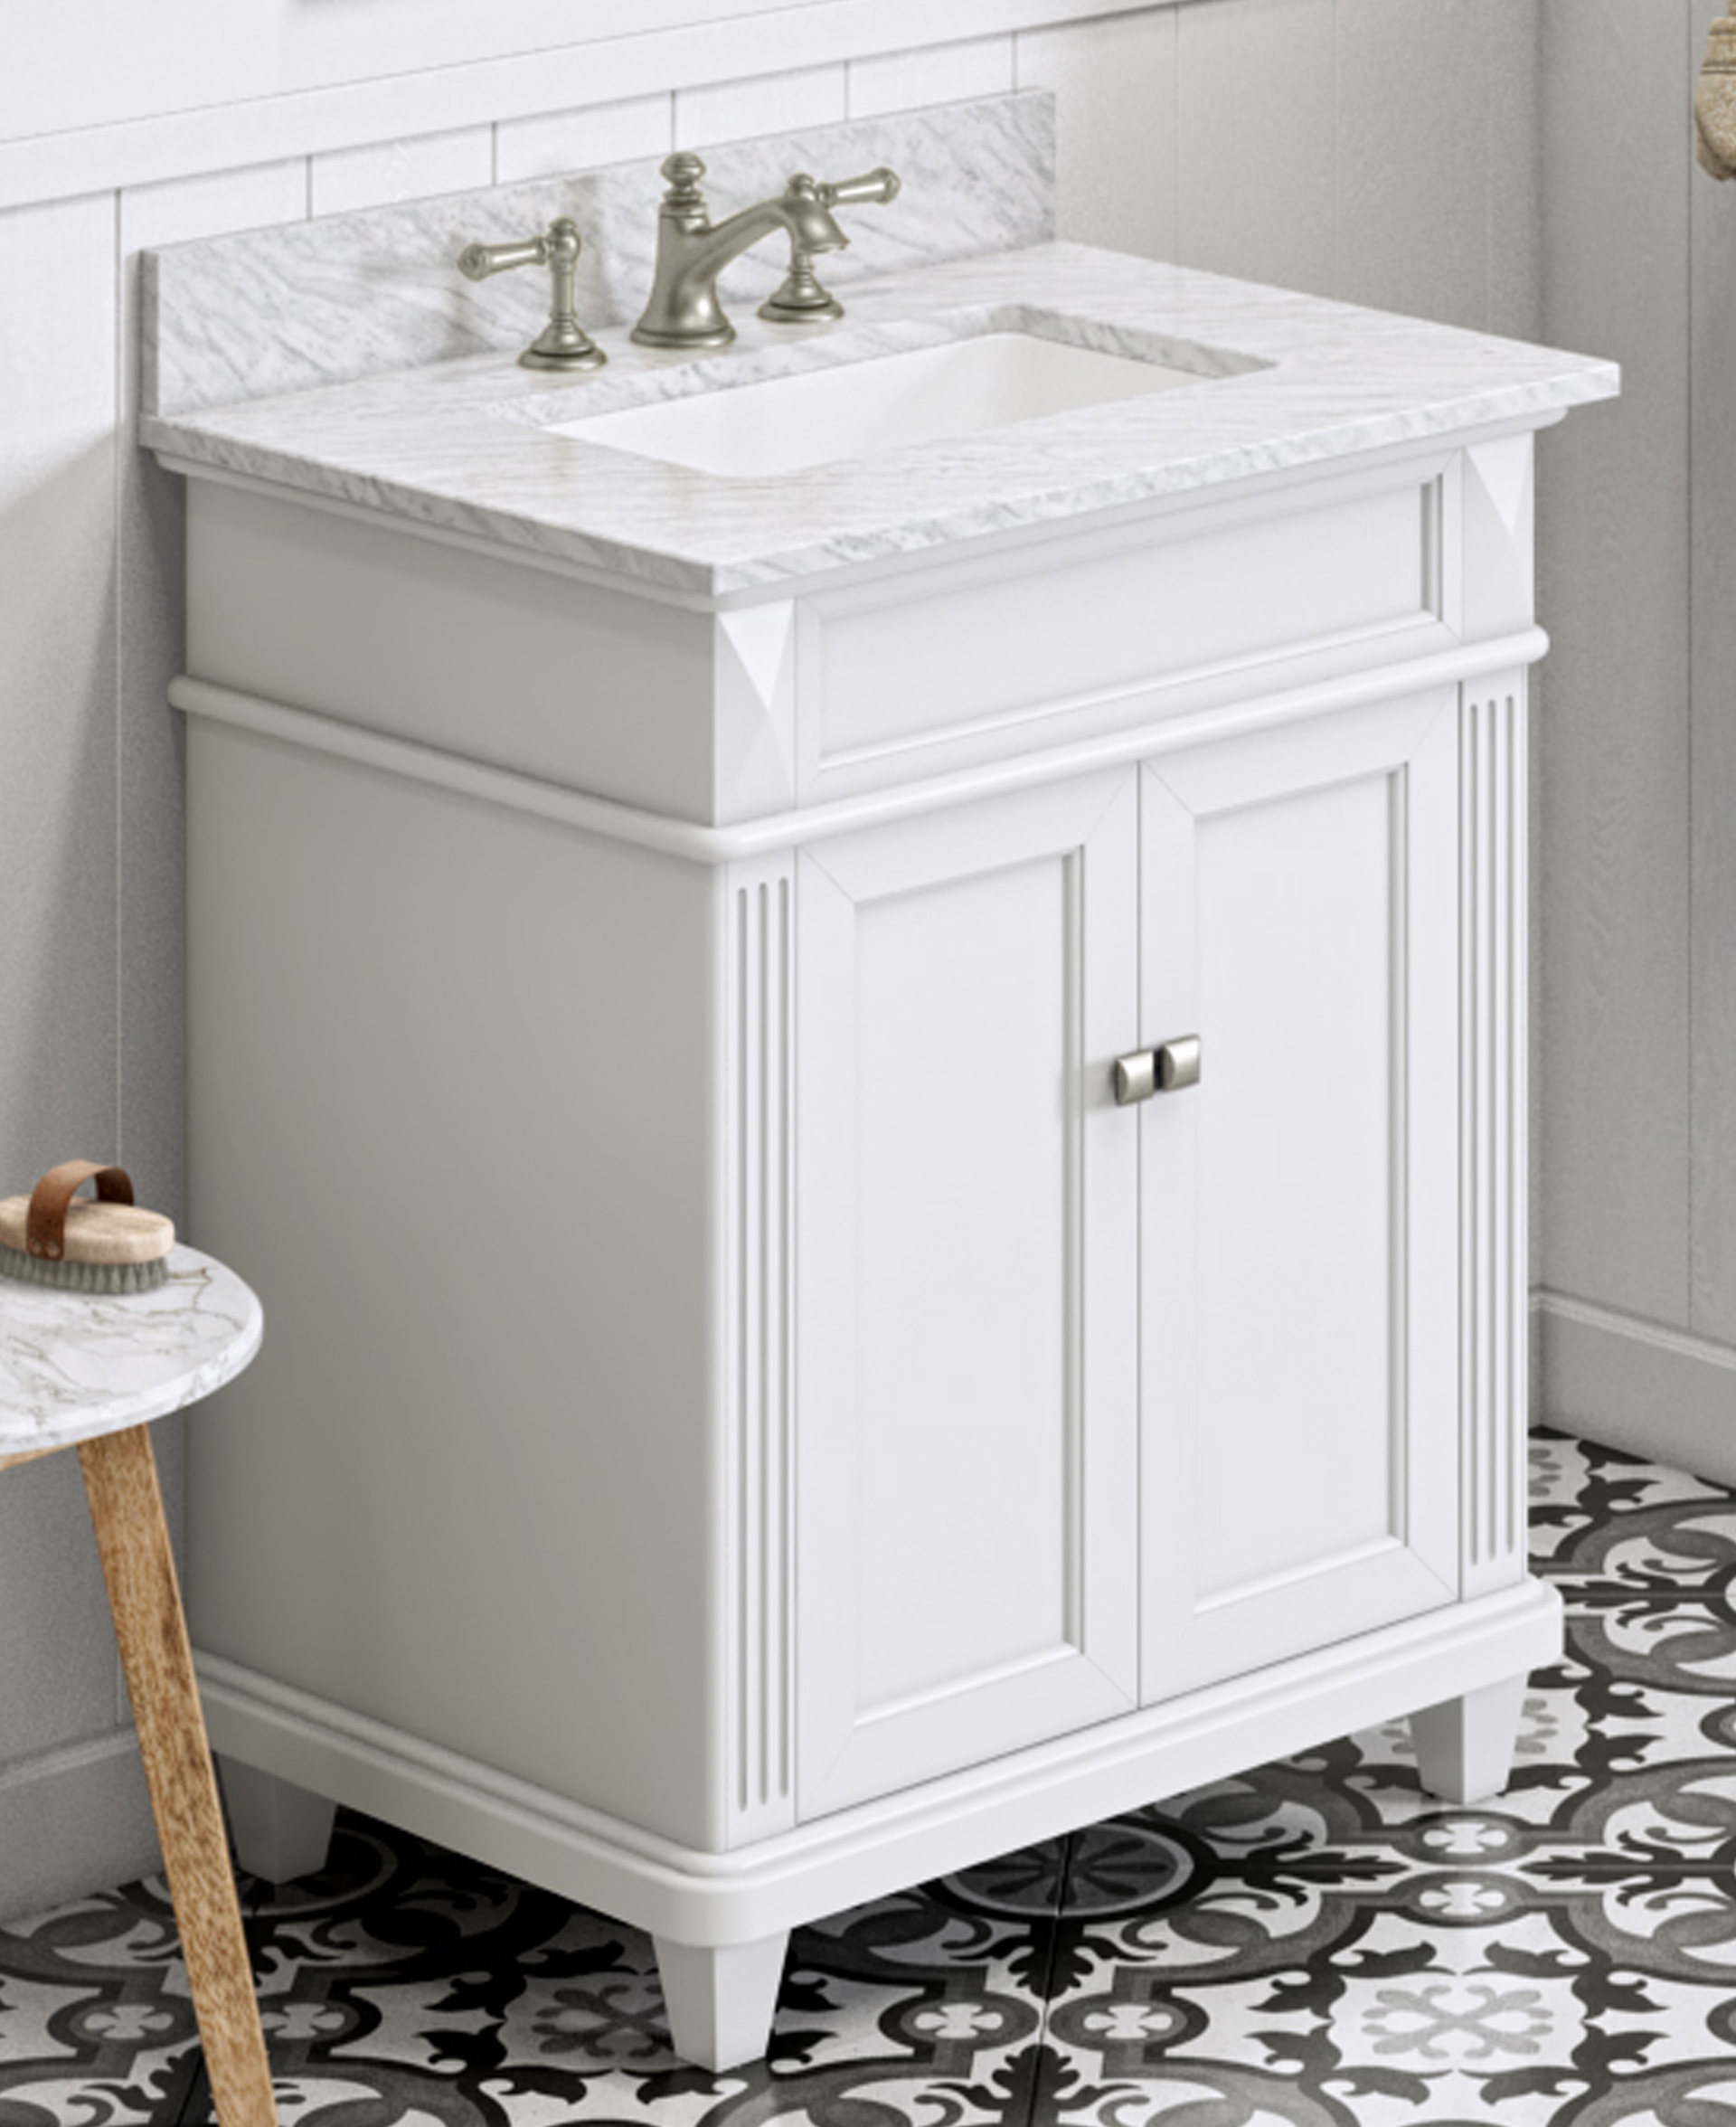 "30"" White Bathroom Vanity Single Sink White Carrara Marble Vanity Top, Undermount Rectangle Bowl"